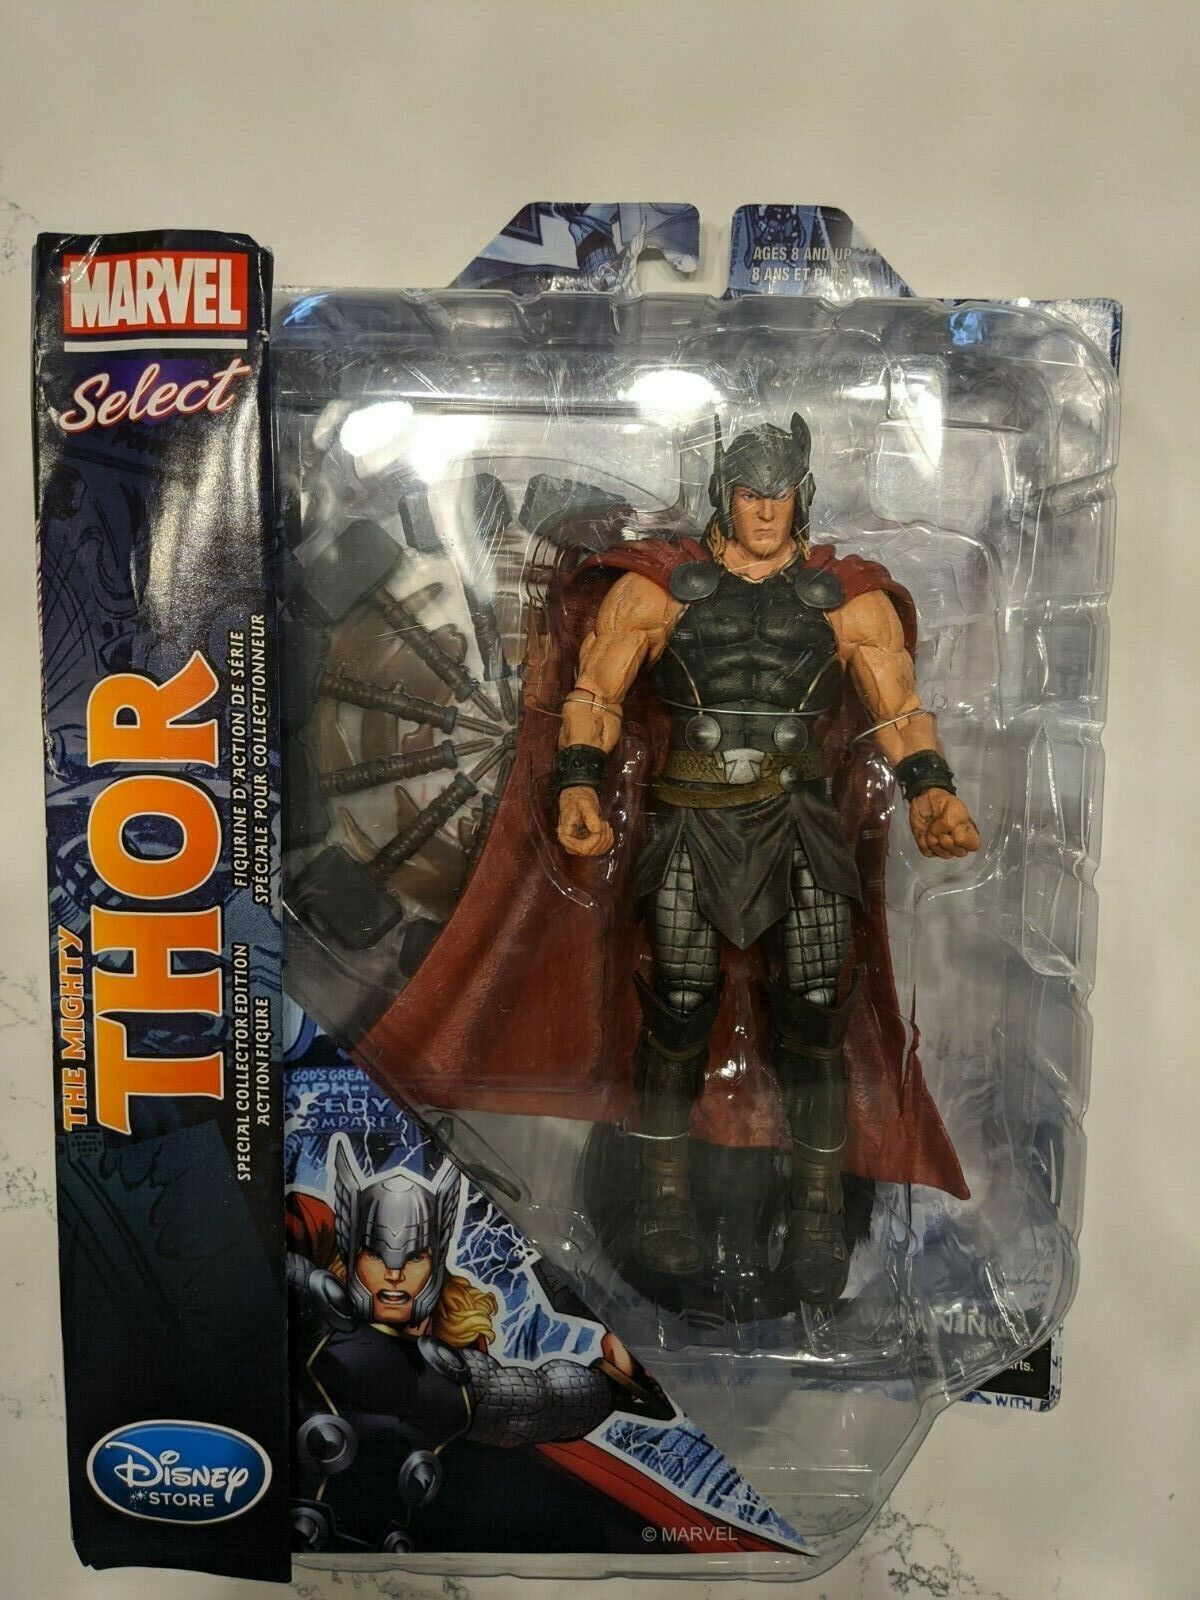 Marvel Select The Mighty Thor Disney Store Exclusive Diamond Action Figure